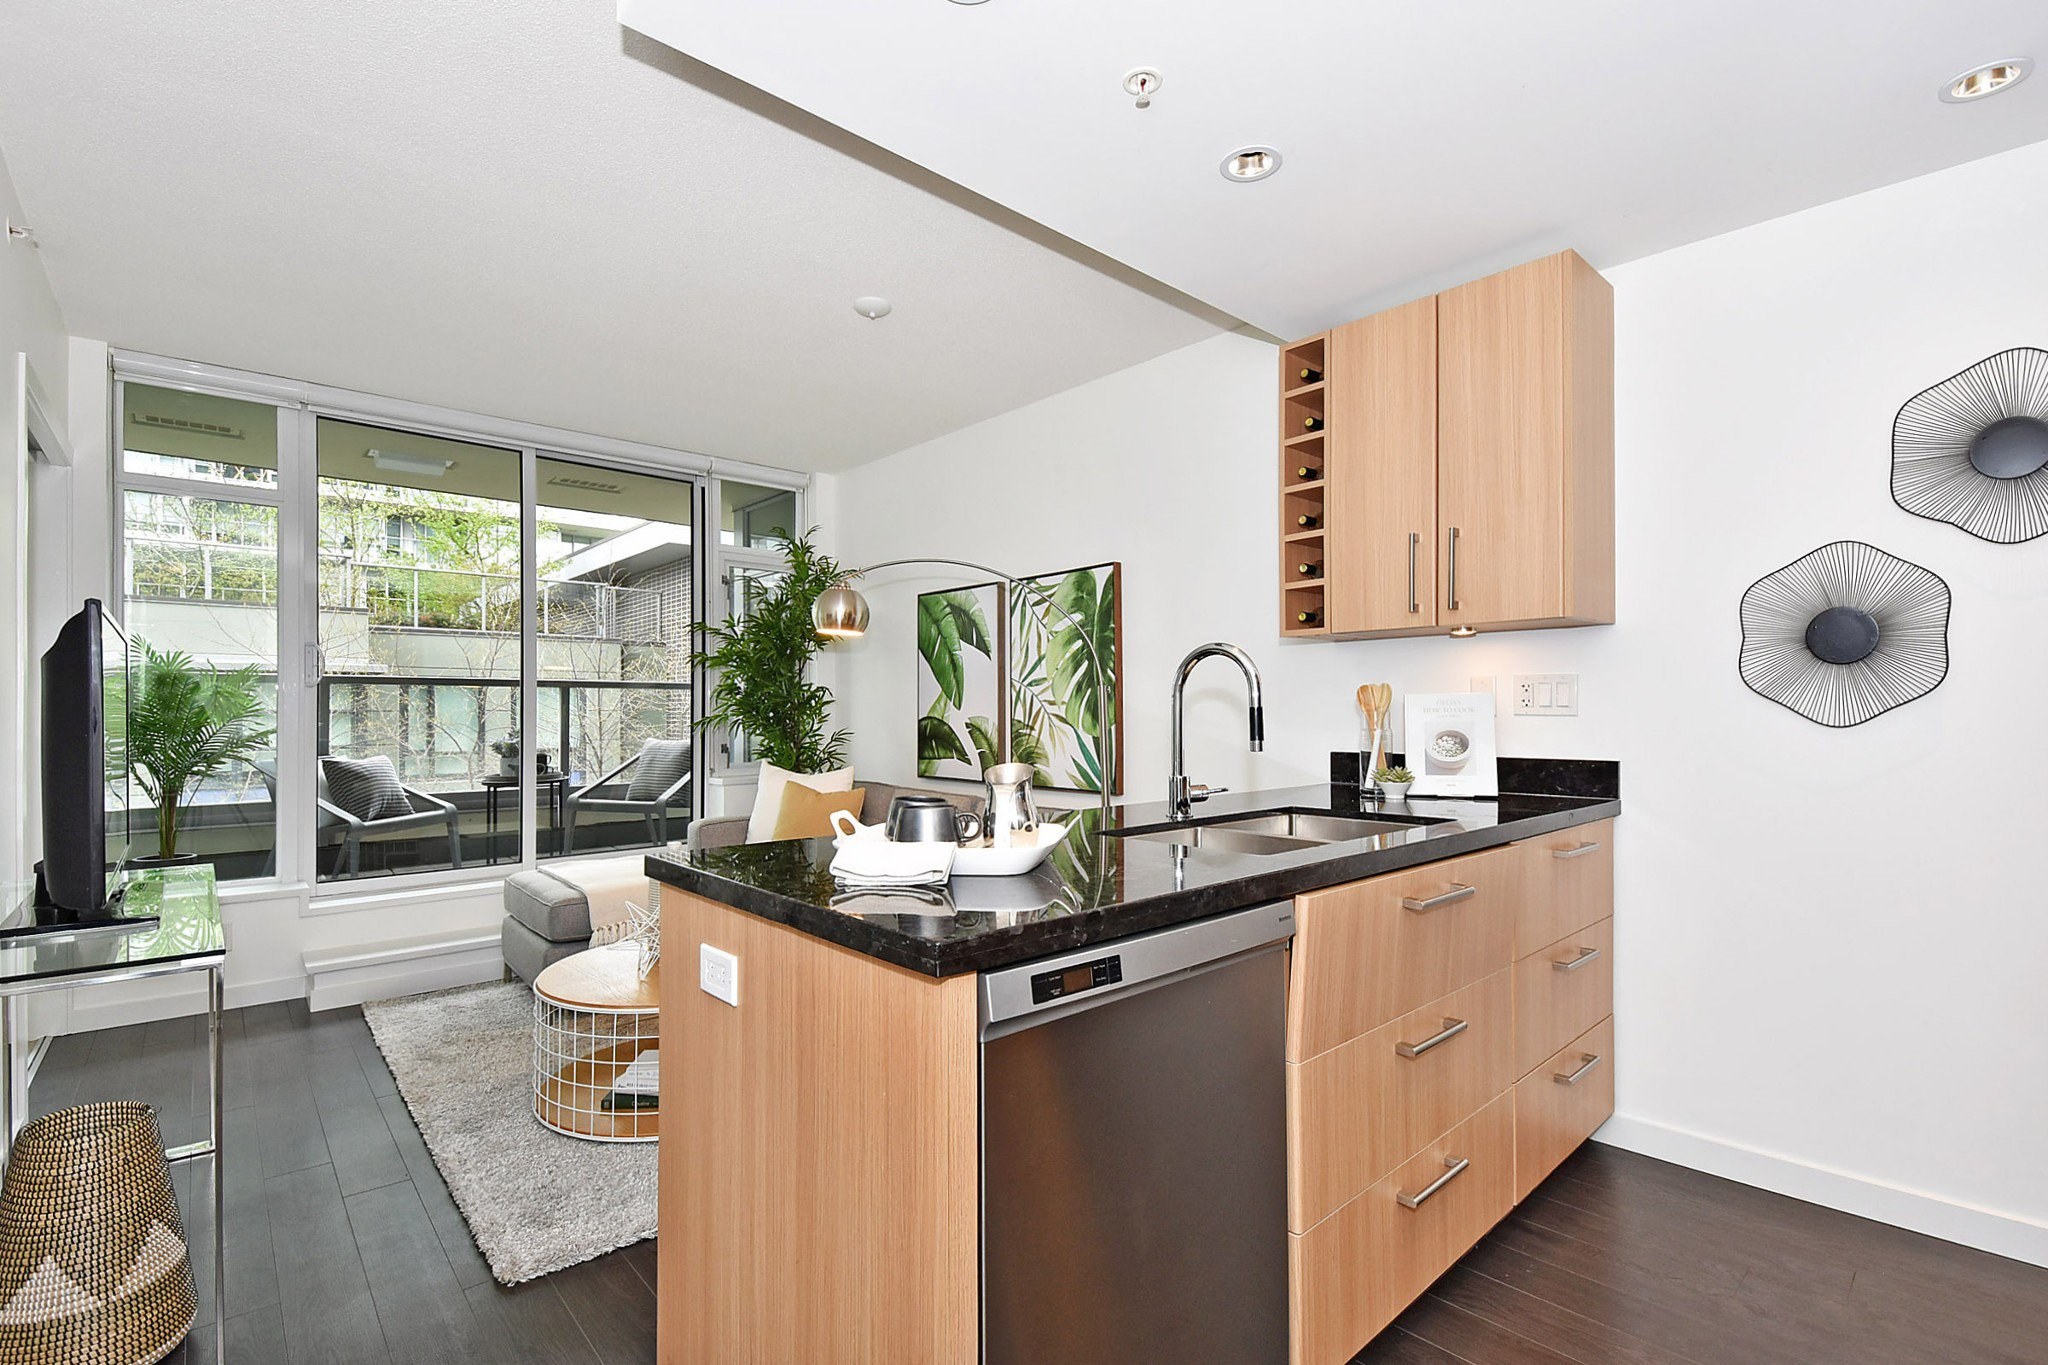 Photo 9: Photos: 306 138 W 1ST AVENUE in Vancouver: False Creek Condo for sale (Vancouver West)  : MLS®# R2360592